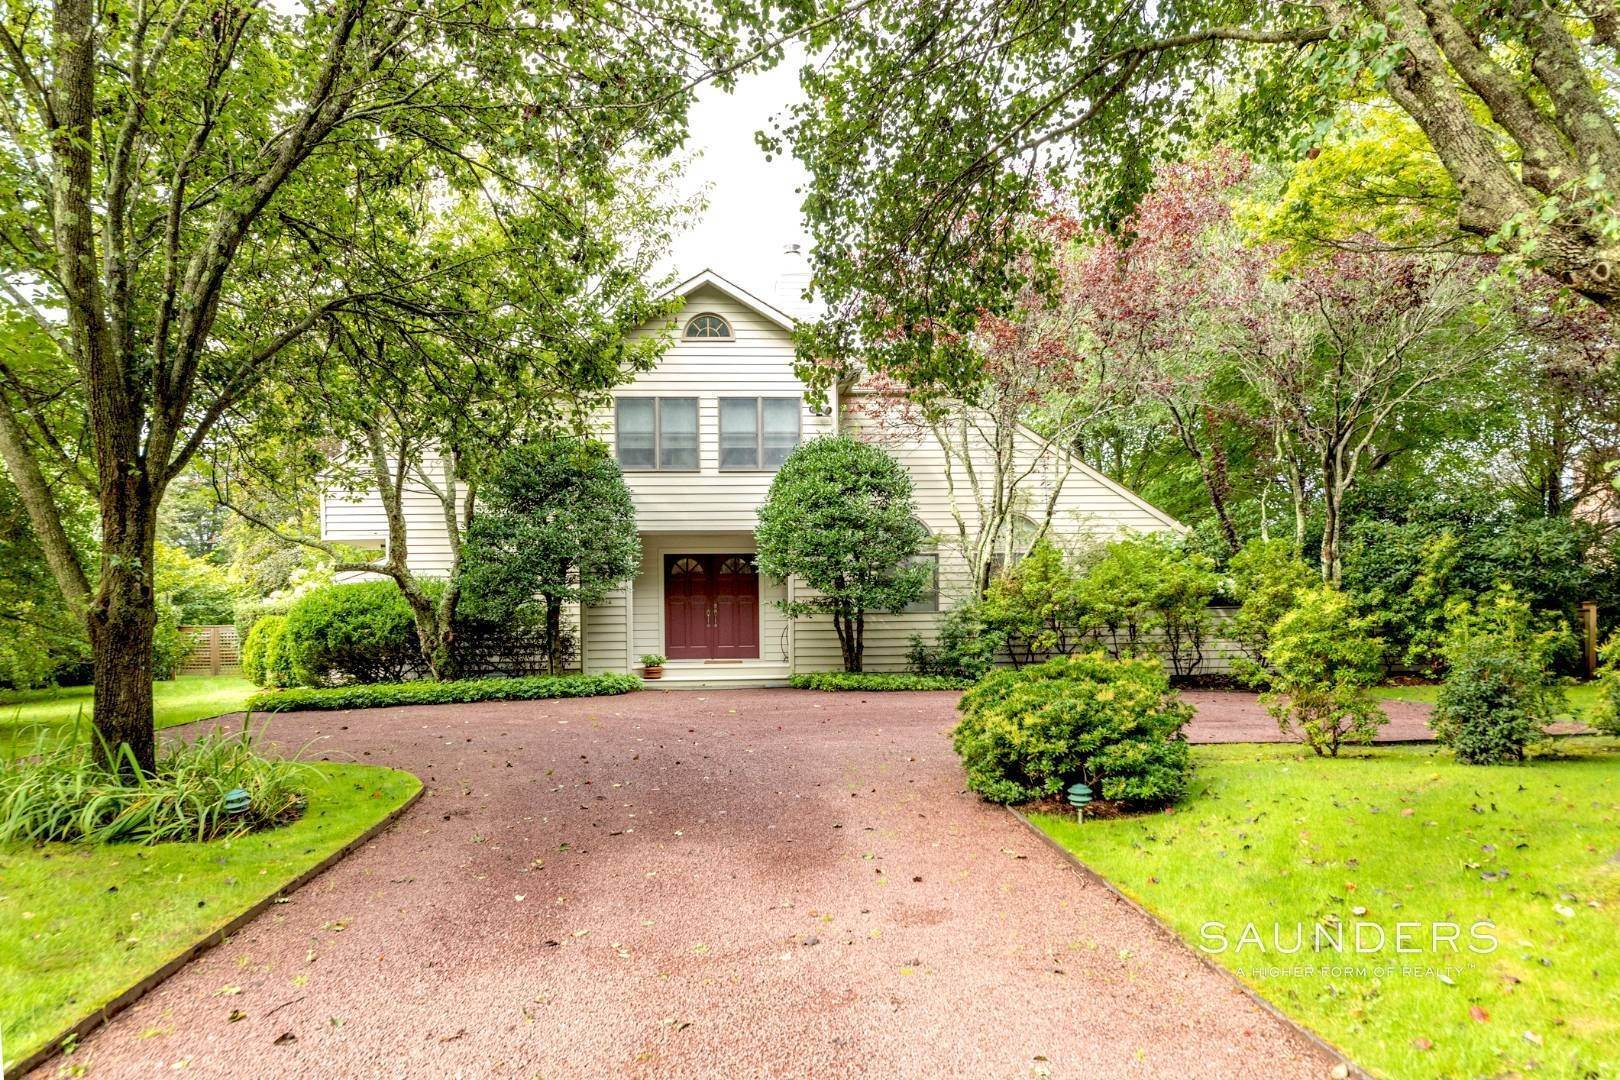 2. Single Family Homes for Sale at Welcome Home 11 Horseshoe Dr N, East Hampton, East Hampton Town, NY 11937